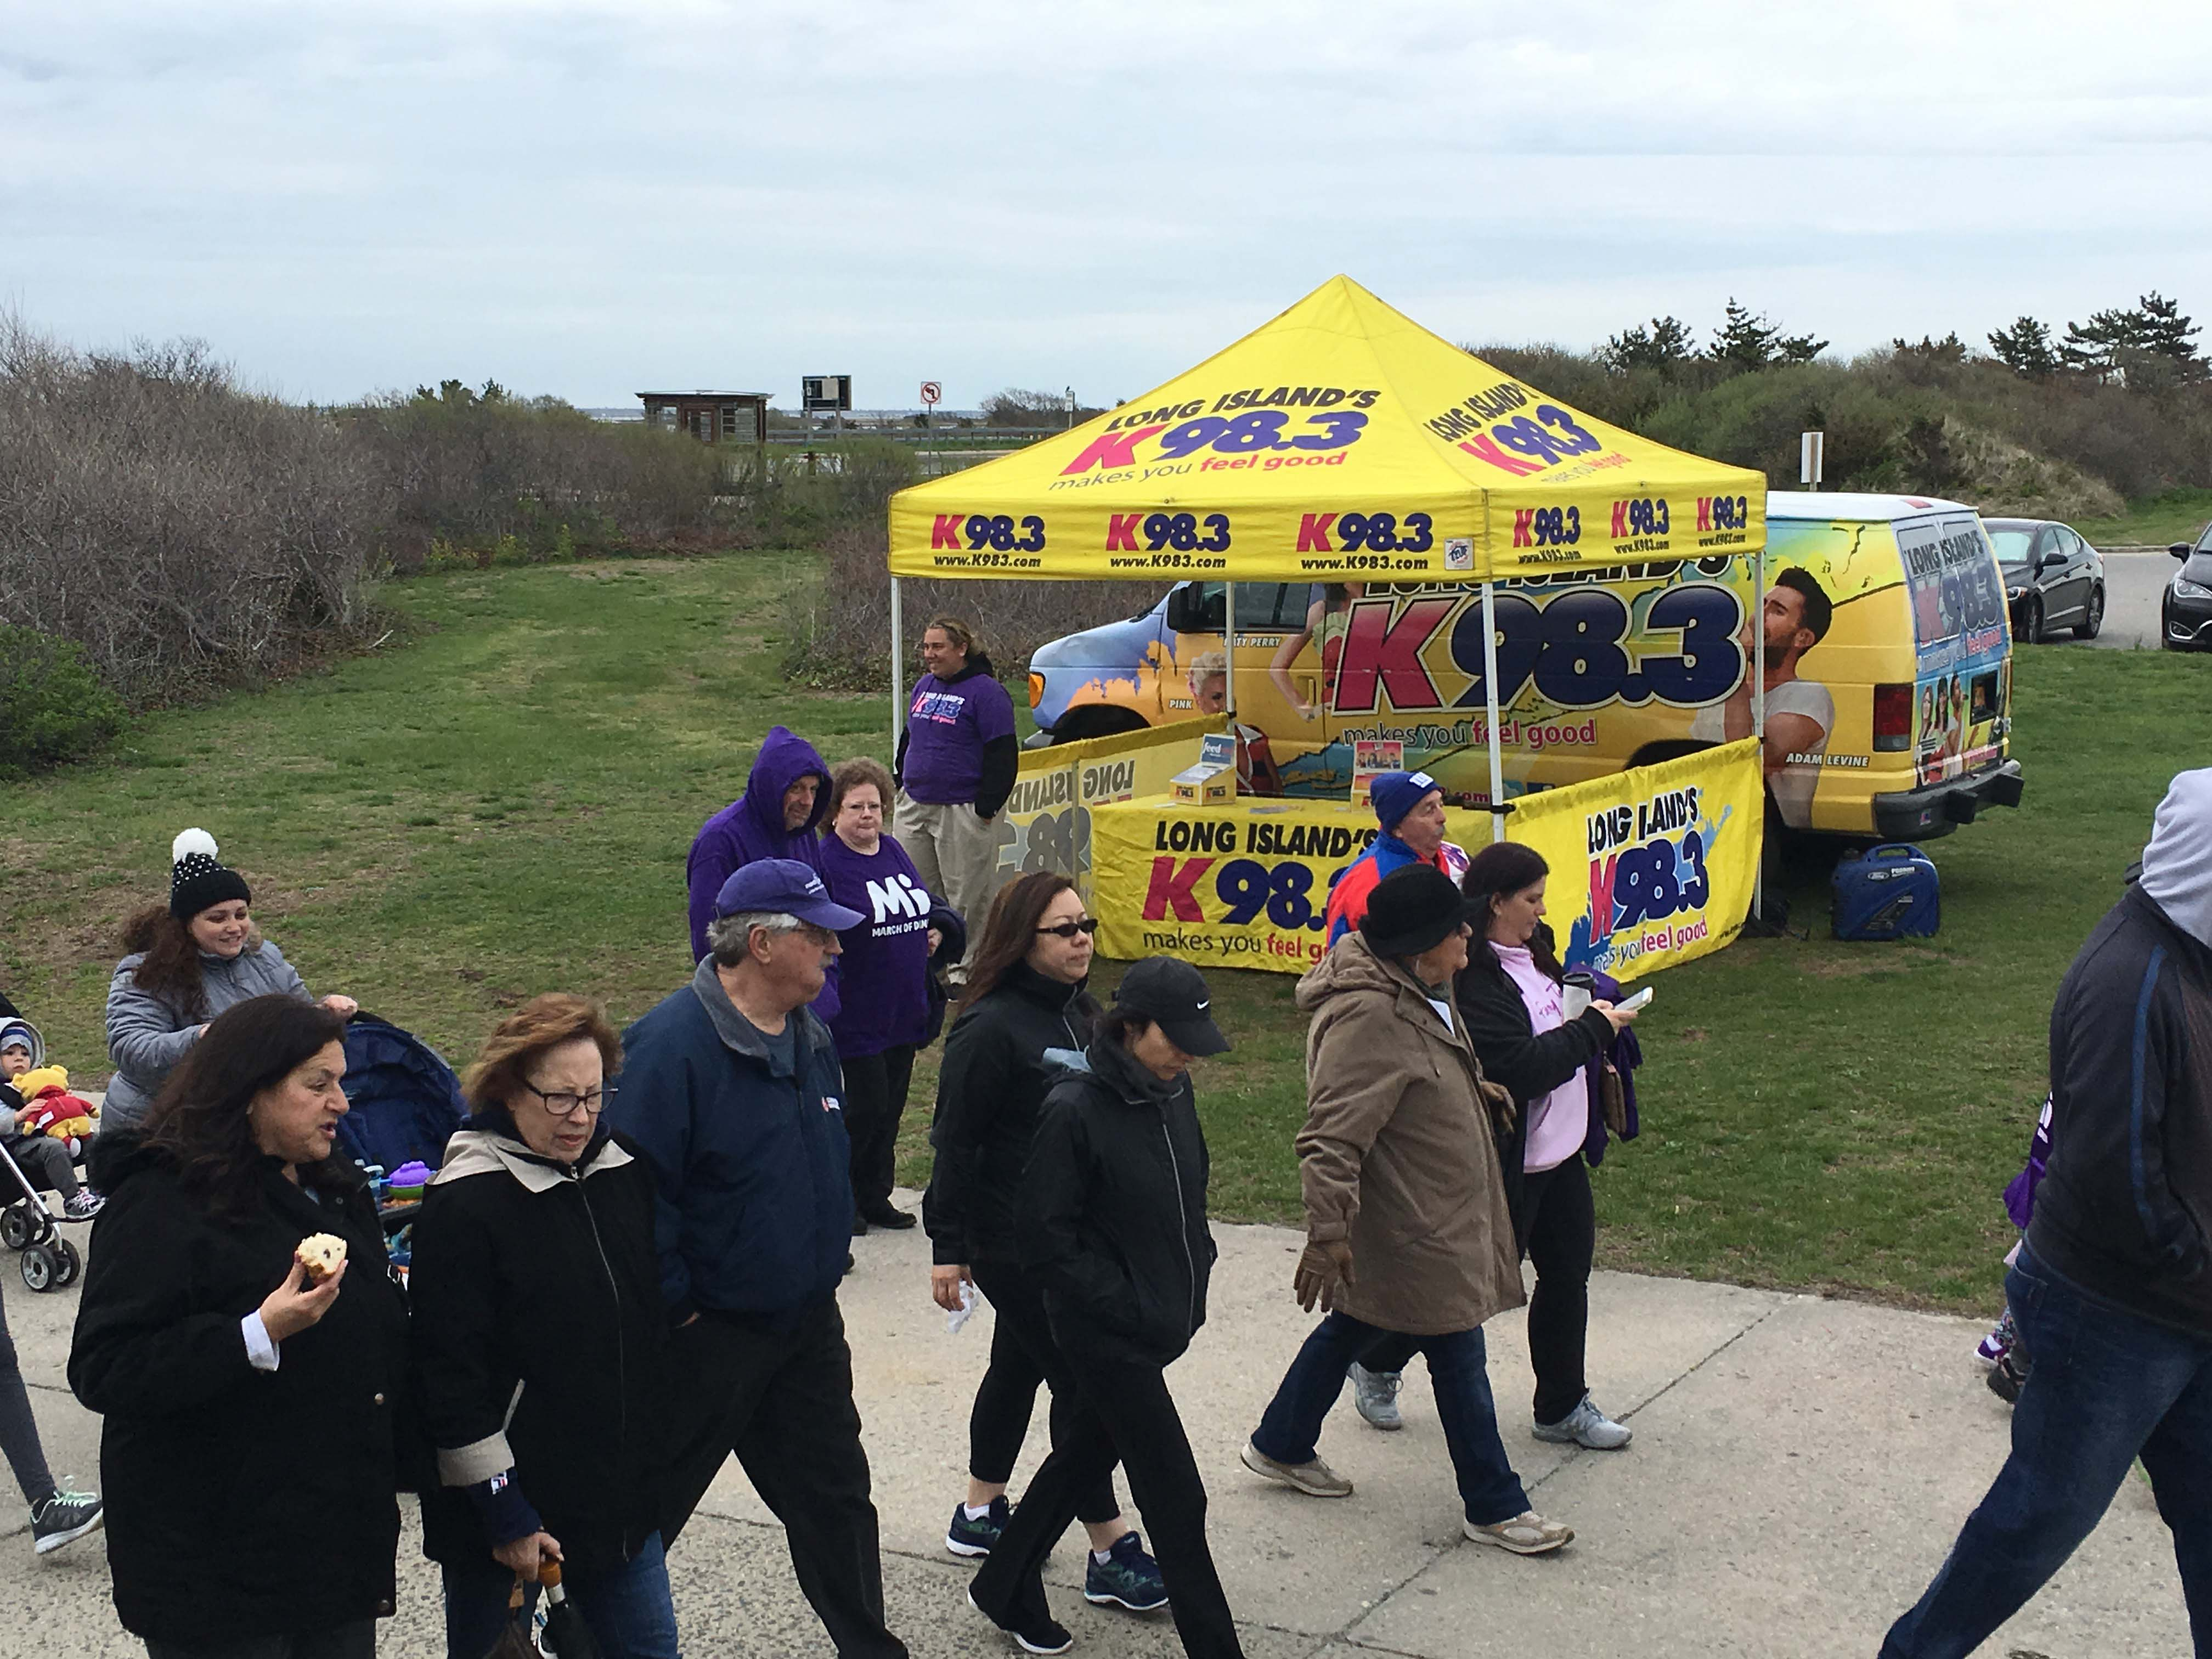 K98.3 @ March of Dimes/March for Babies